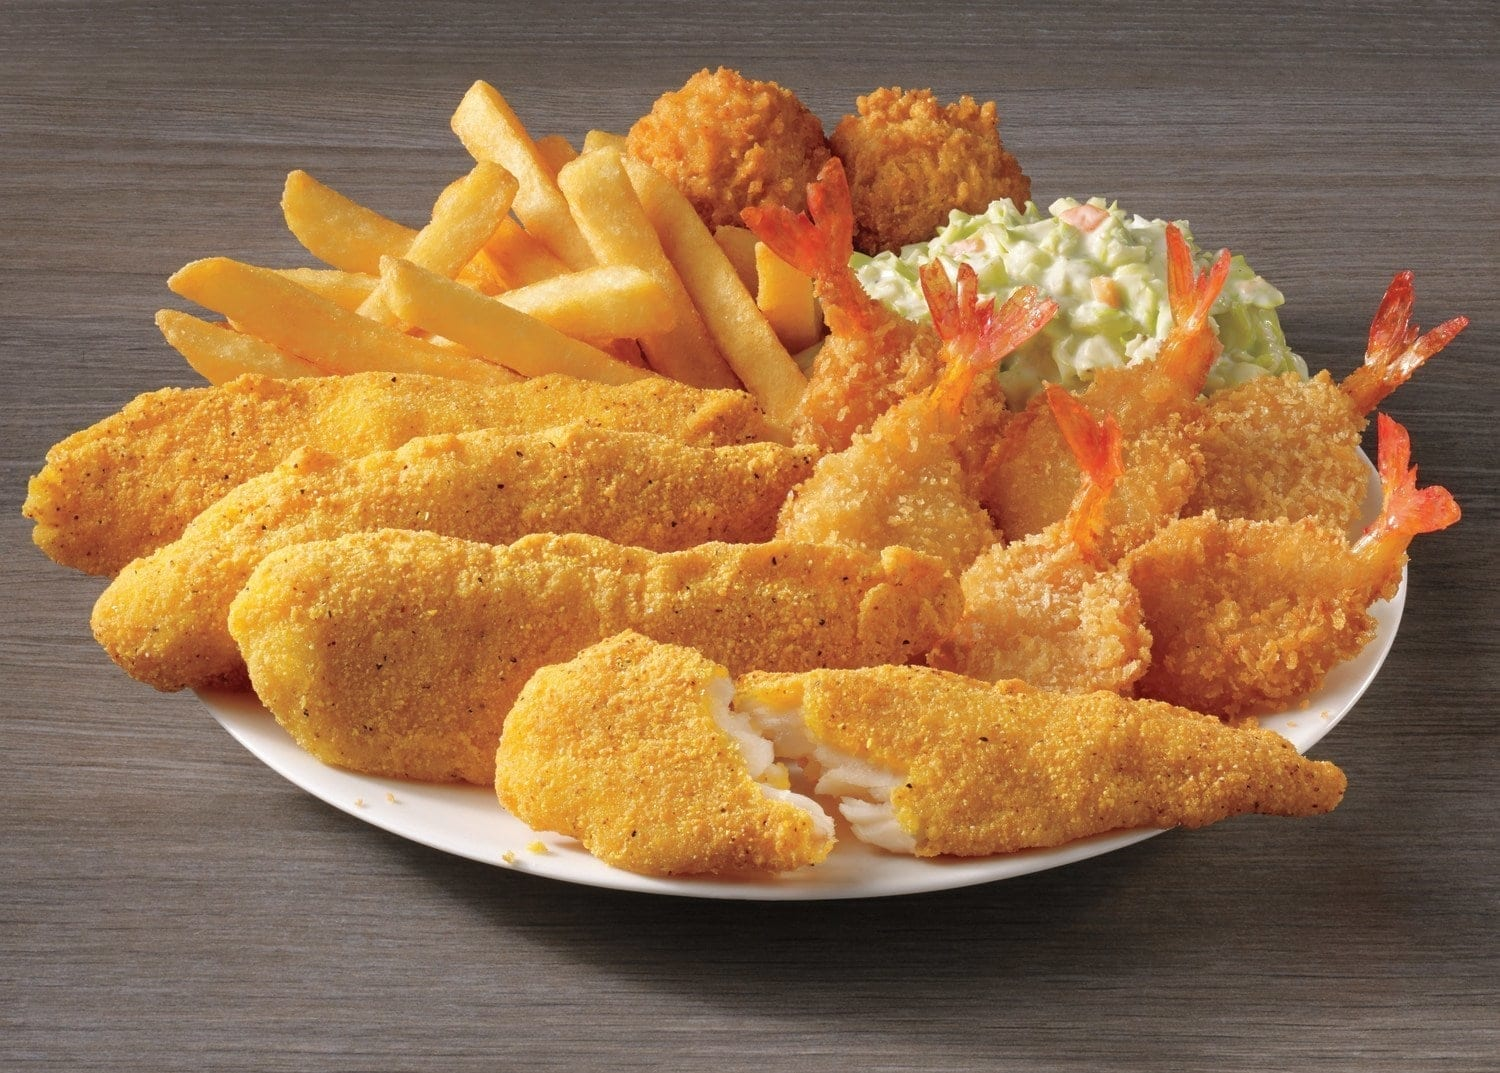 Captain D's Serves Up Southern-Style Fish Tenders & Butterfly Shrimp